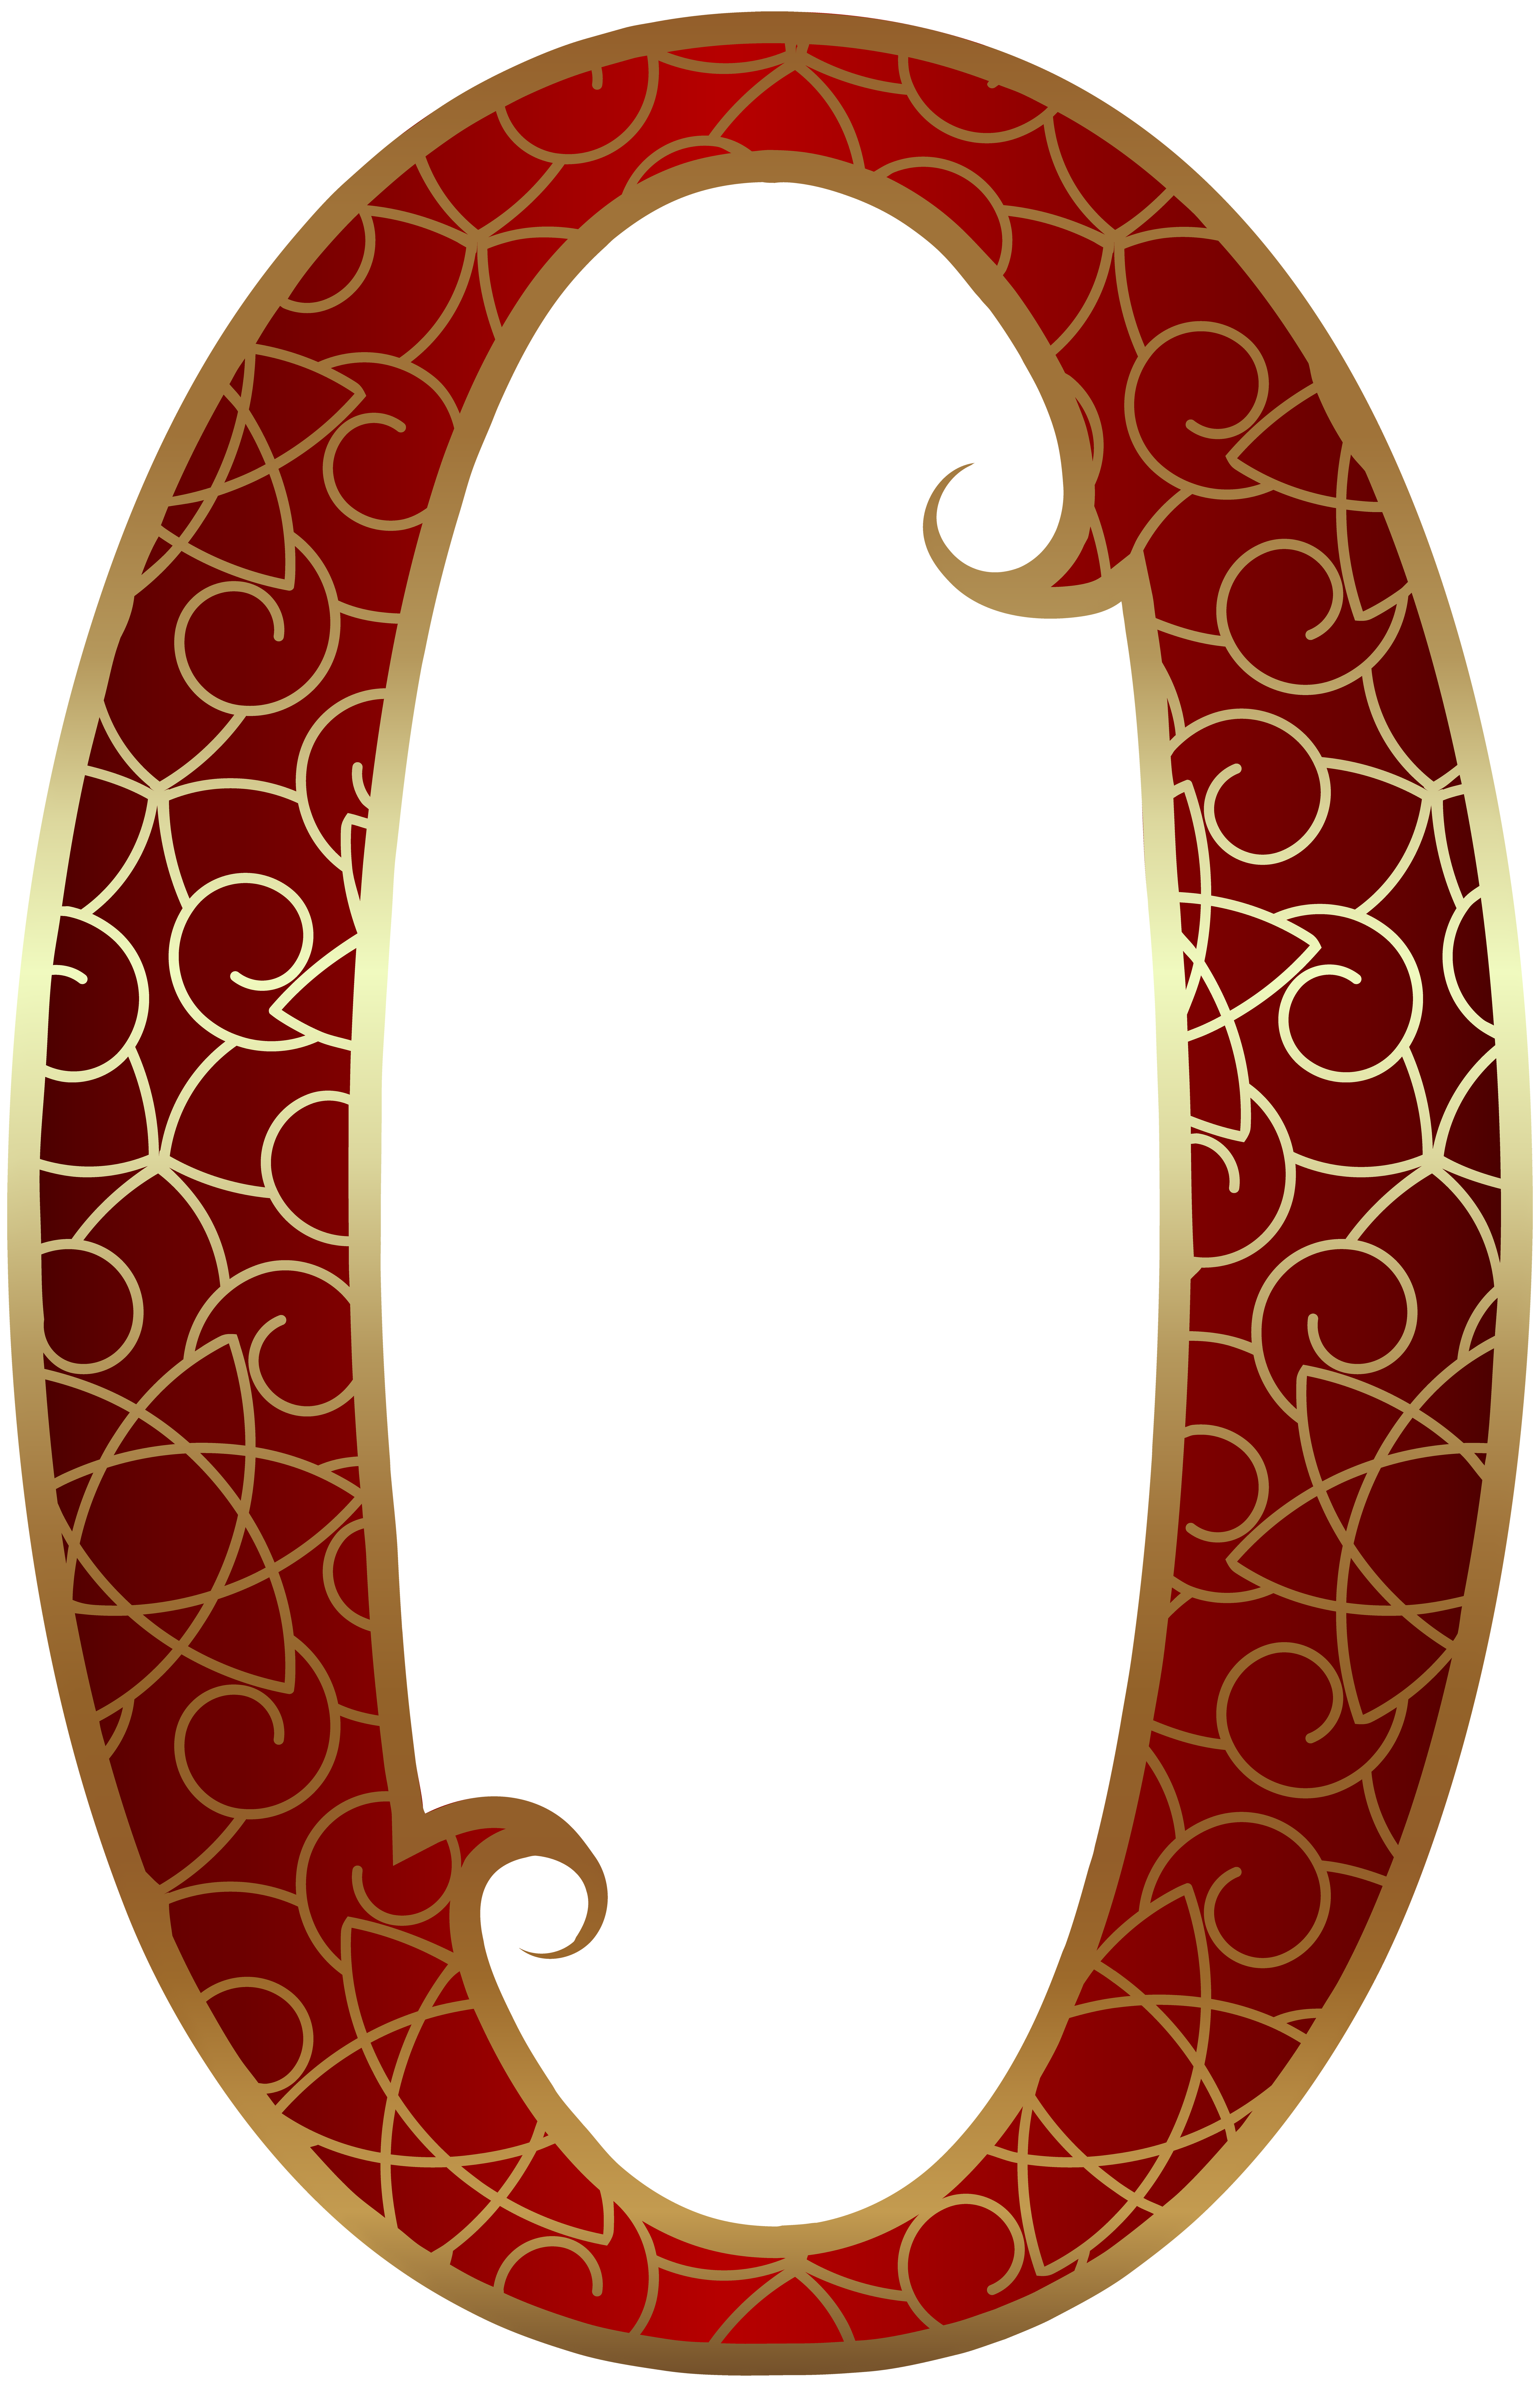 Gold red zero png. Number 1 clipart decorative